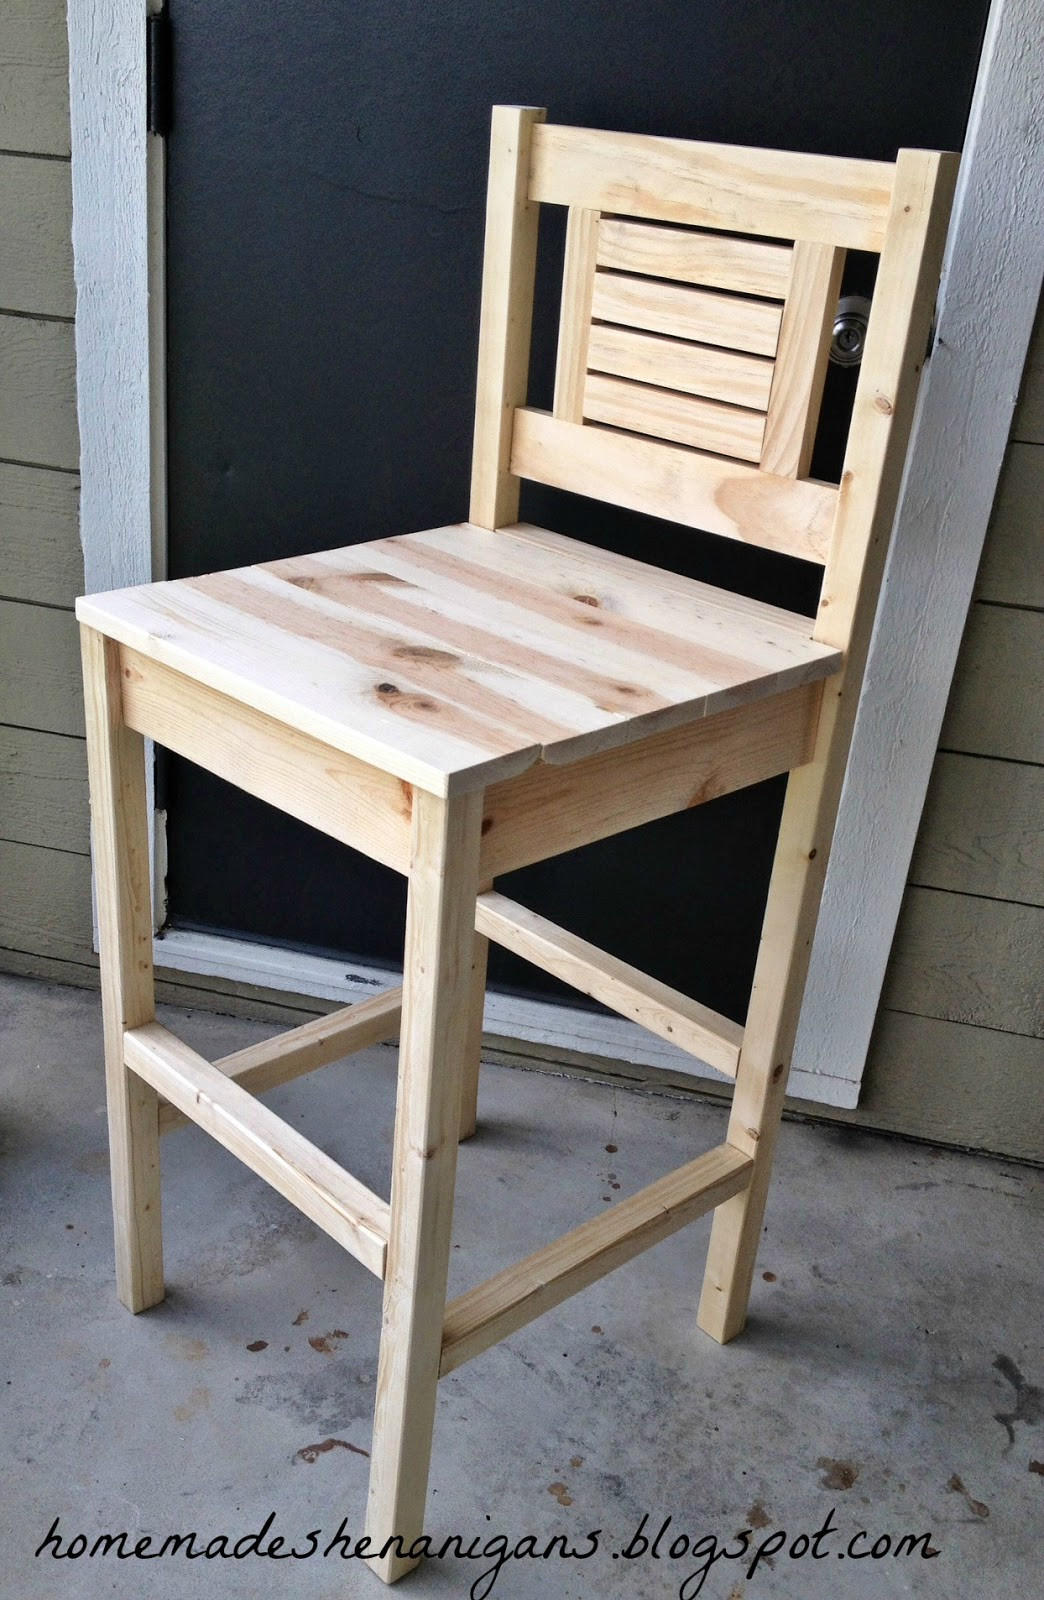 Best ideas about DIY Wooden Bar Stools . Save or Pin Homemade Shenanigans DIY Bar Stool Now.